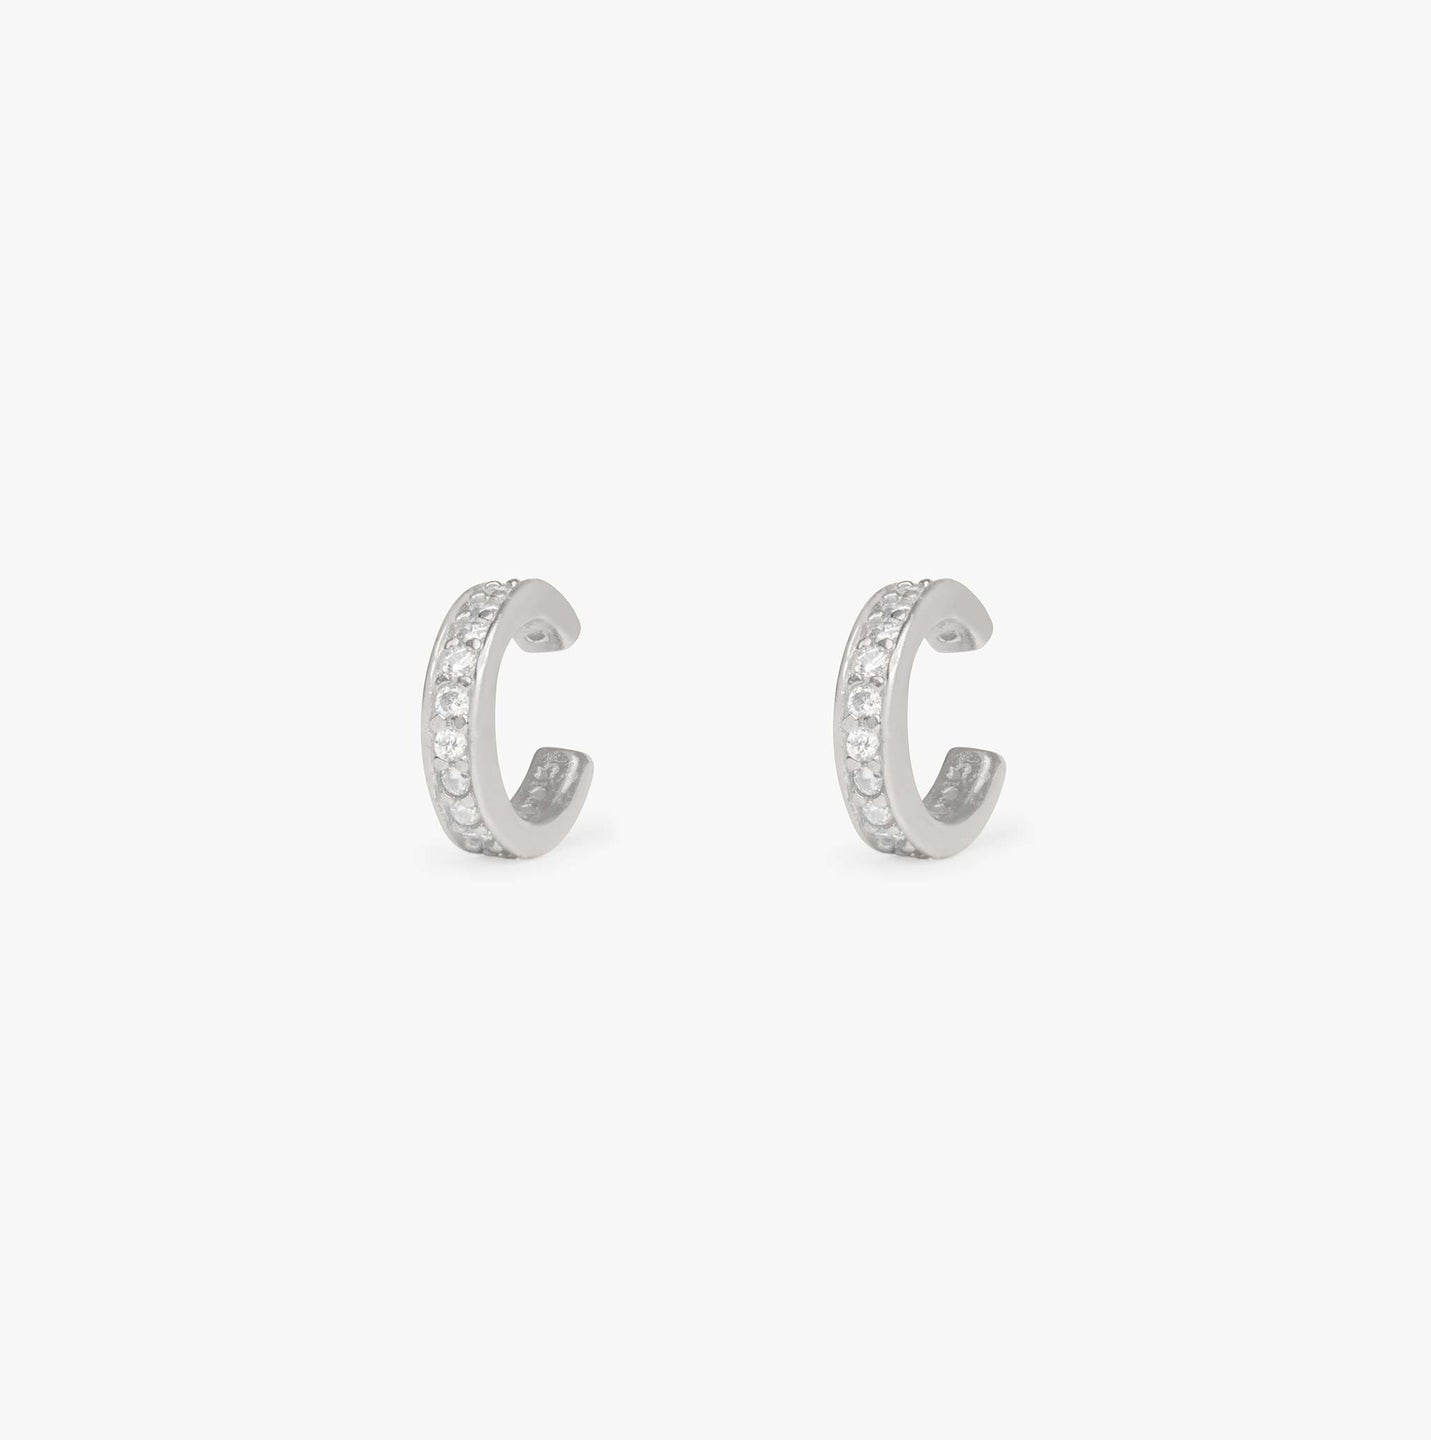 Silver ear cuff lined with CZ gems to be used without a piercing. [pair] color:silver / clear